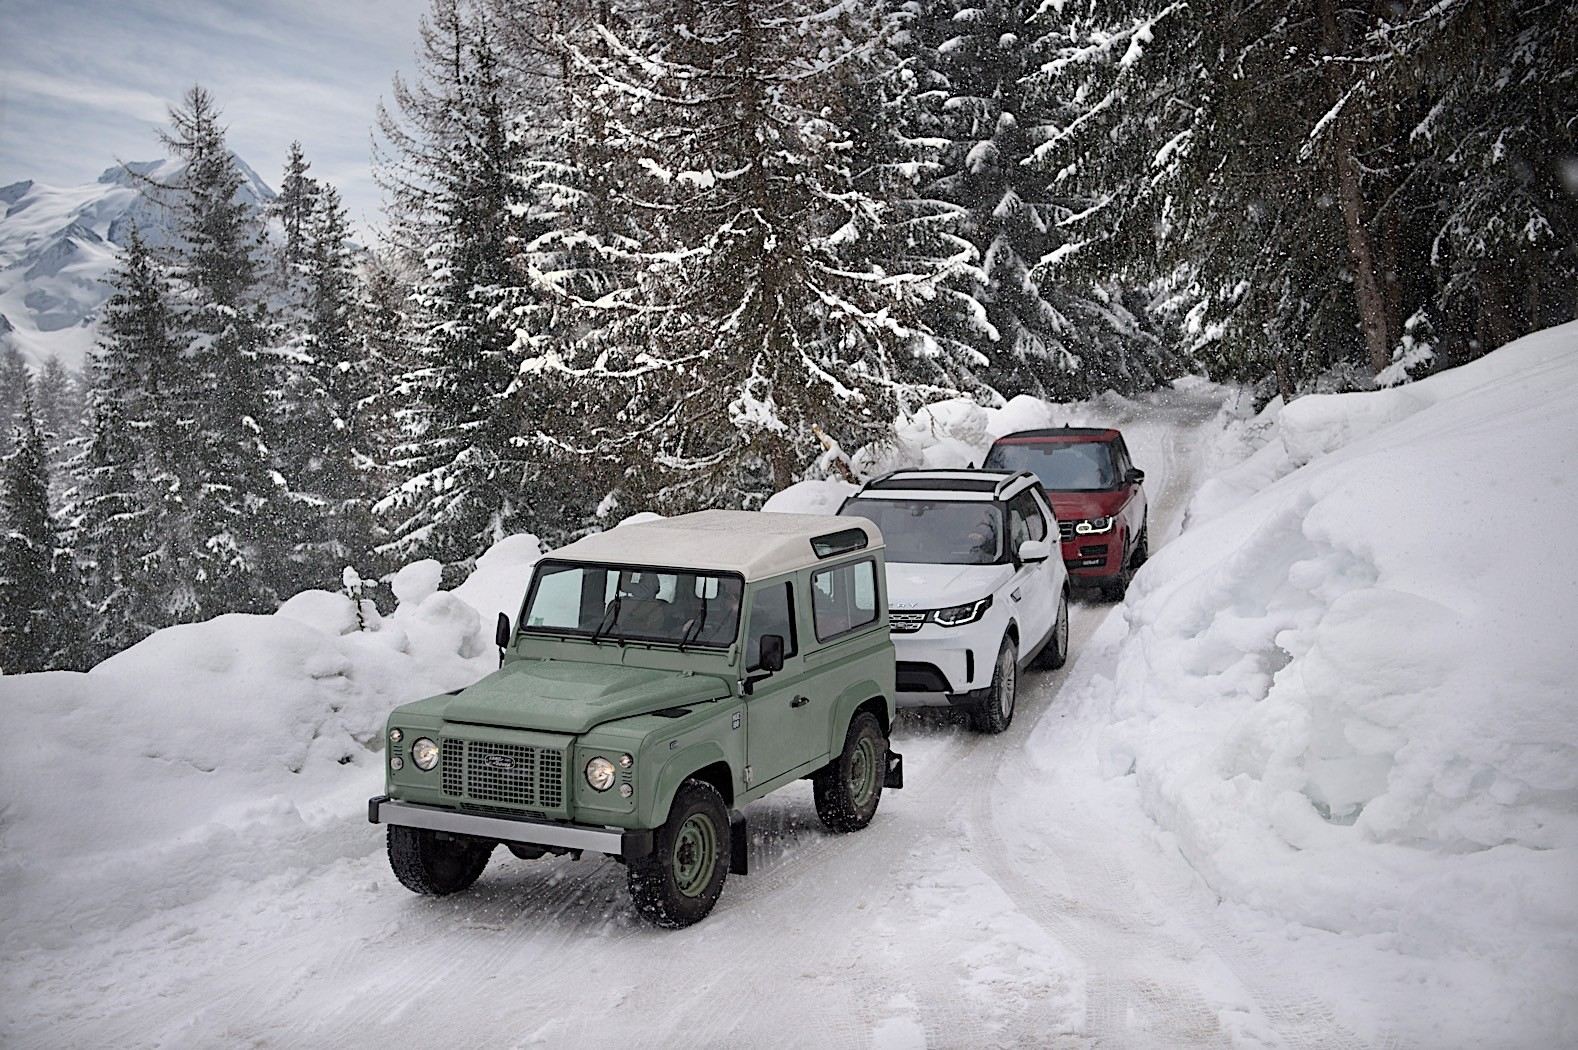 https://s1.cdn.autoevolution.com/images/news/gallery/land-rover-draws-a-820-foot-wide-defender-outline-in-the-french-alps_4.jpg